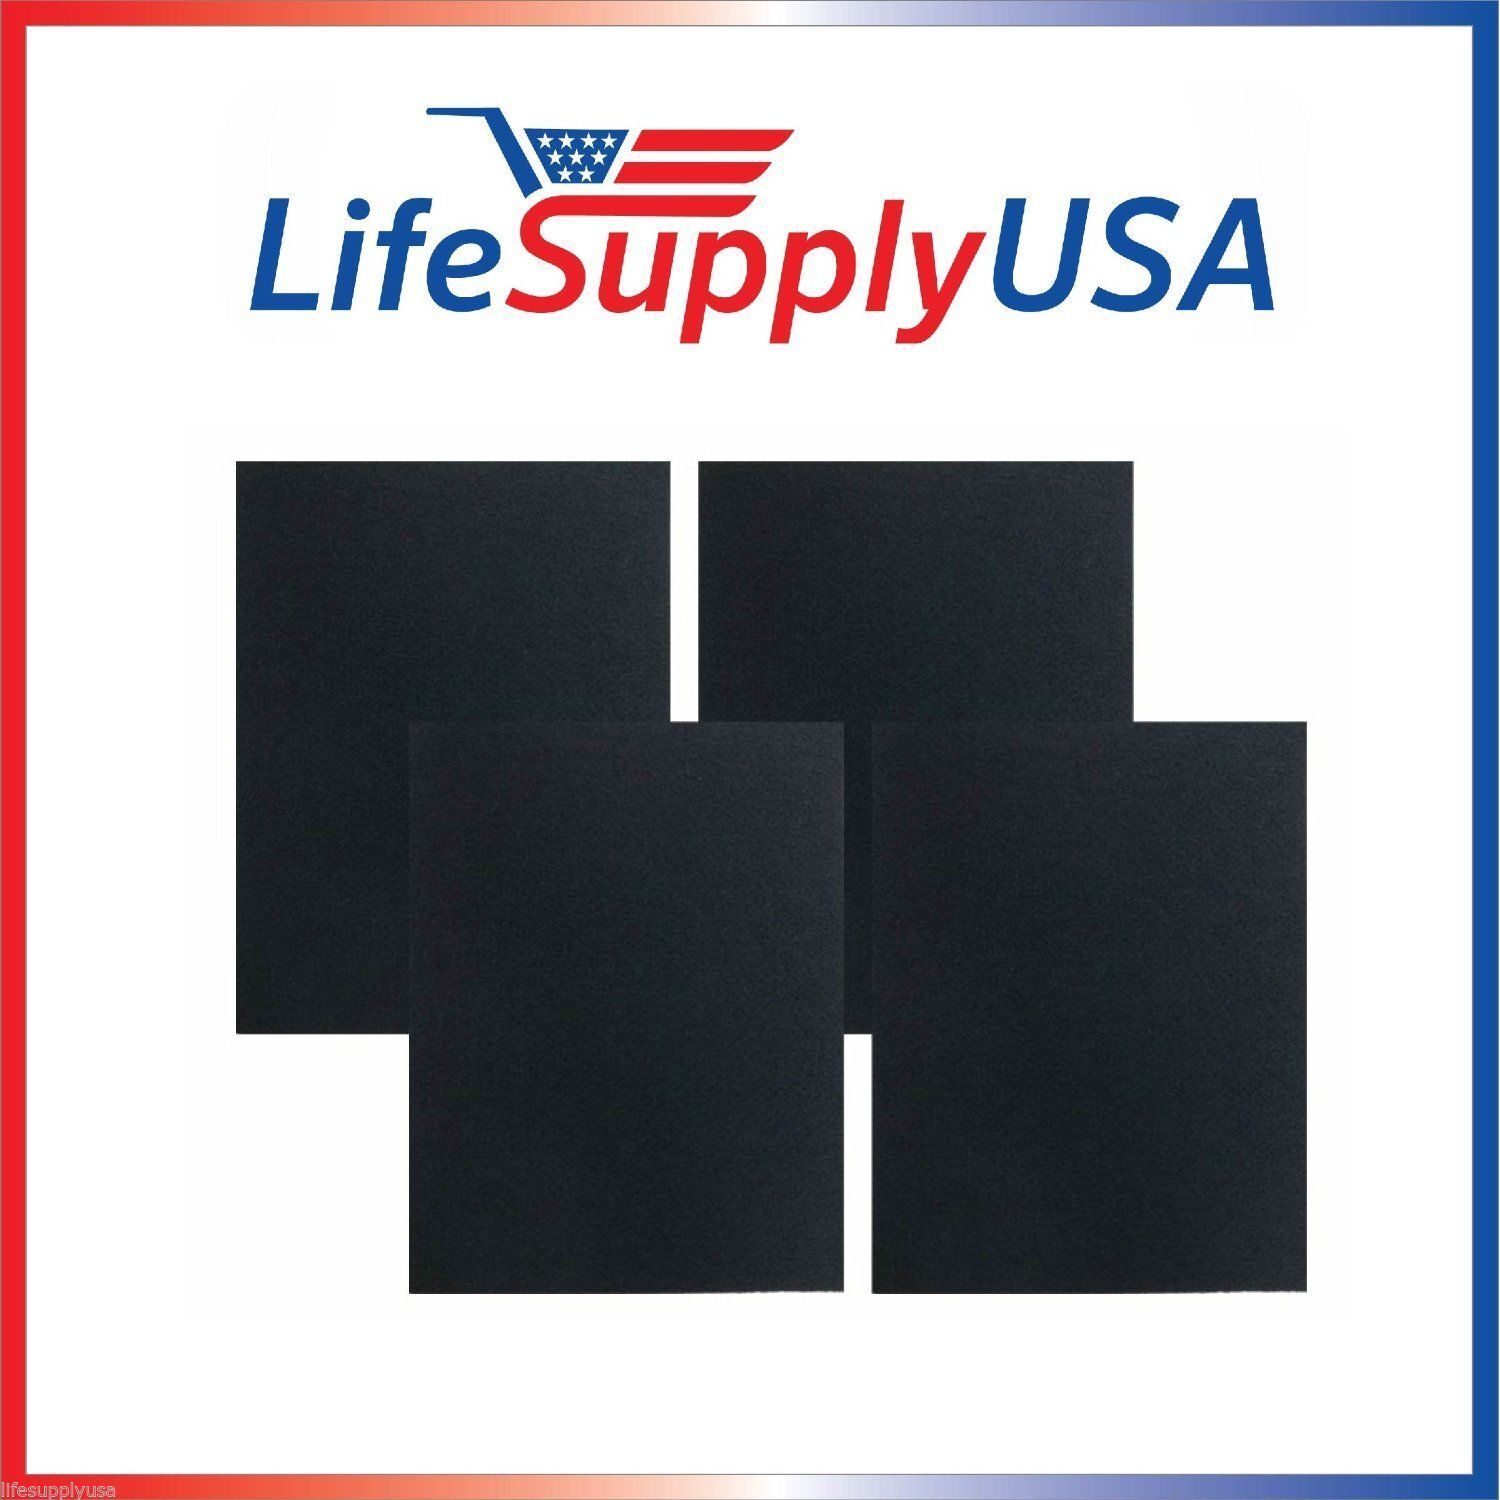 4 Replacement Carbon Pre Filters for Winix 115122, Filter G by LifeSupplyUSA